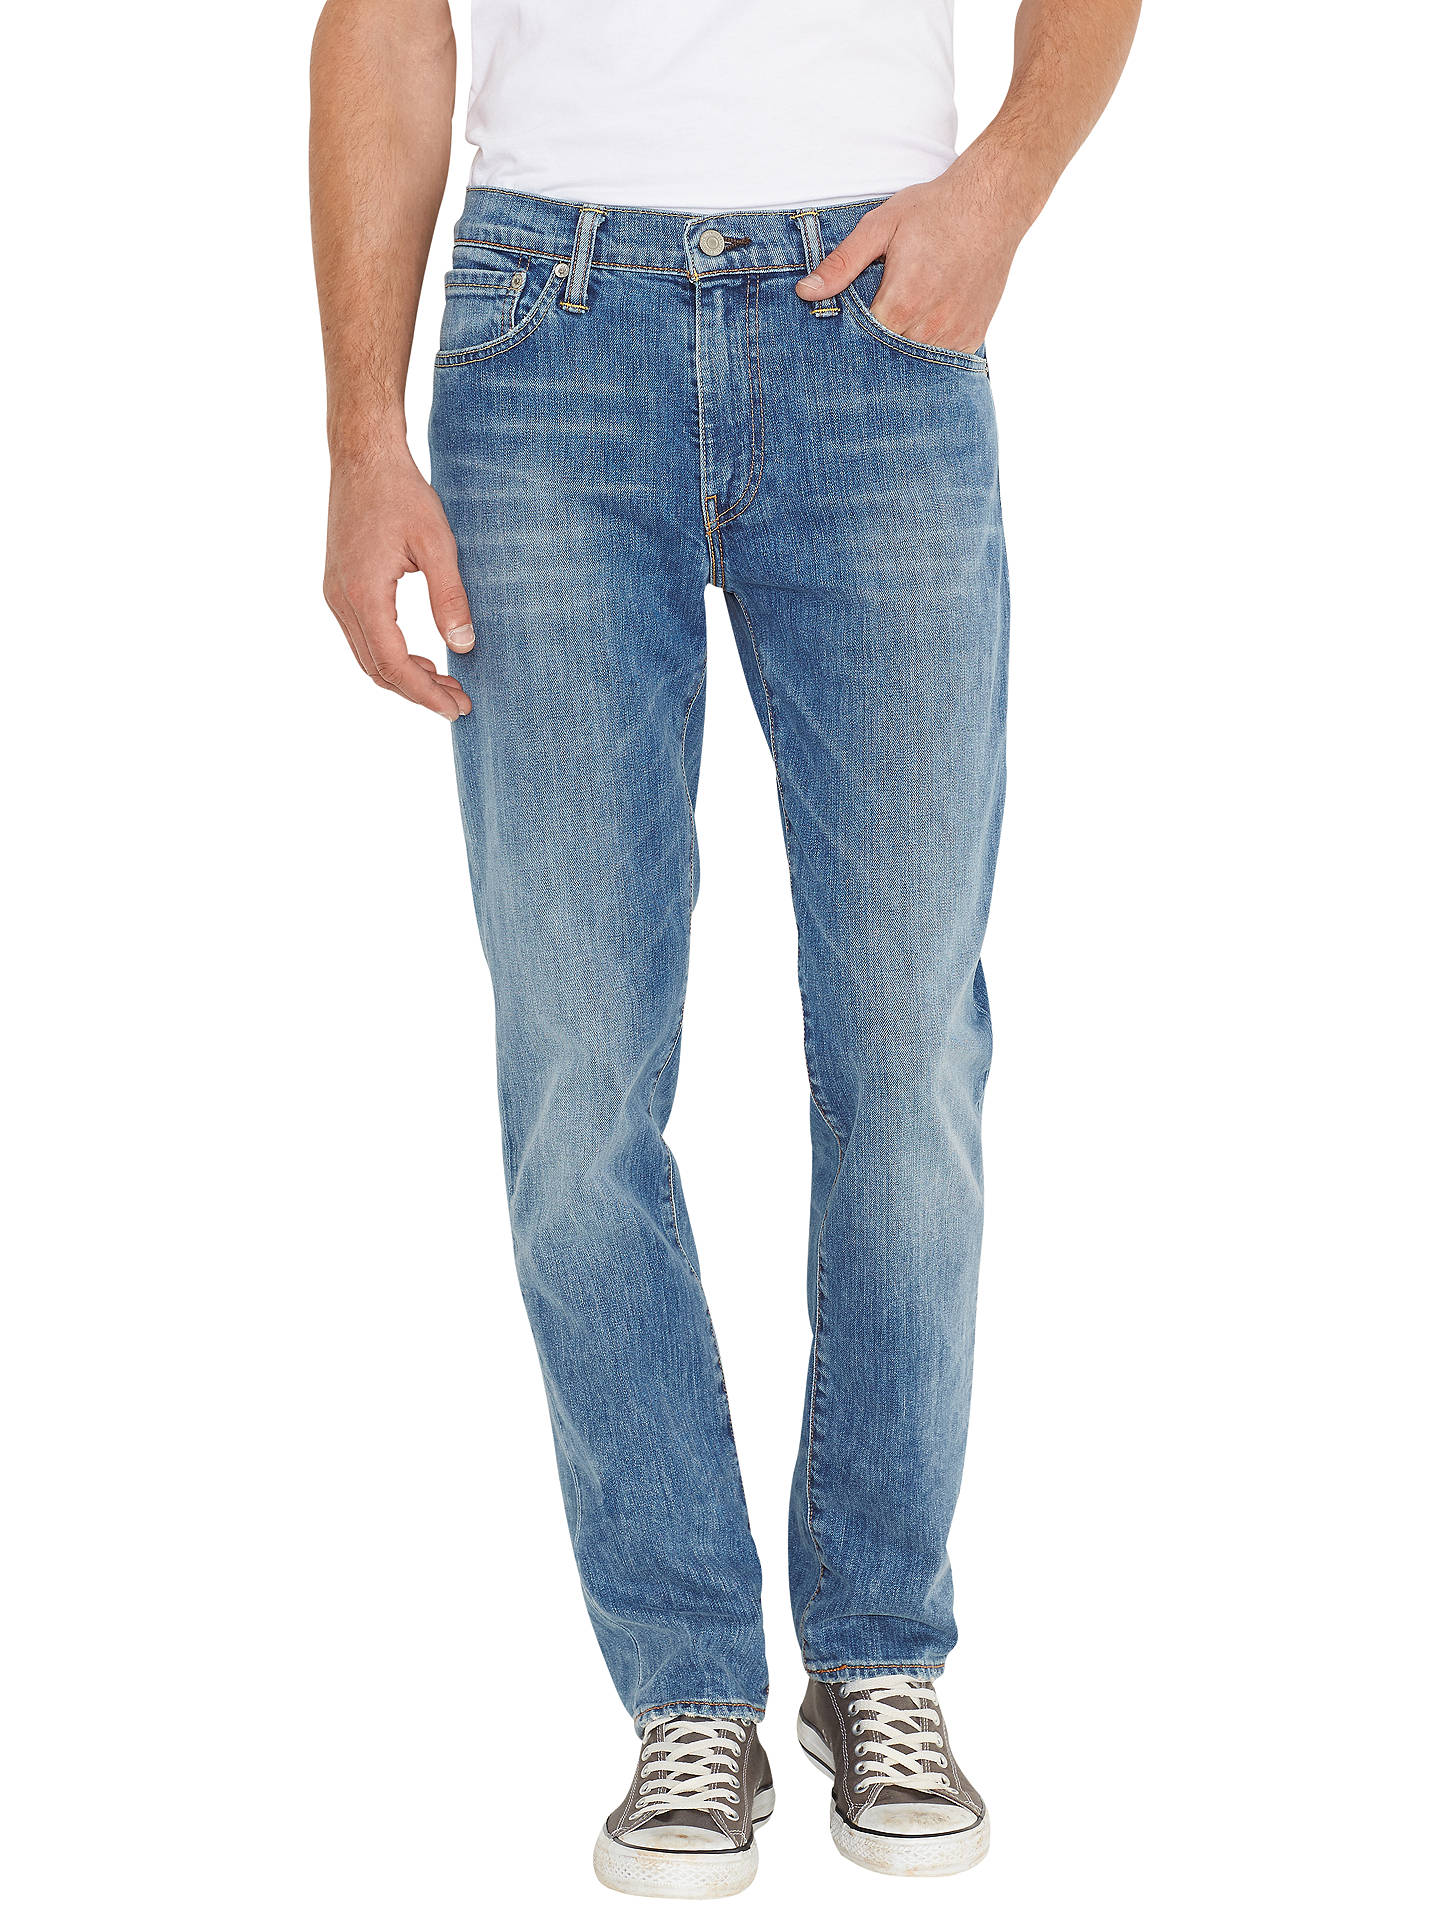 Buy Levi's 511 Slim Jeans, Harbour, 30S Online at johnlewis.com